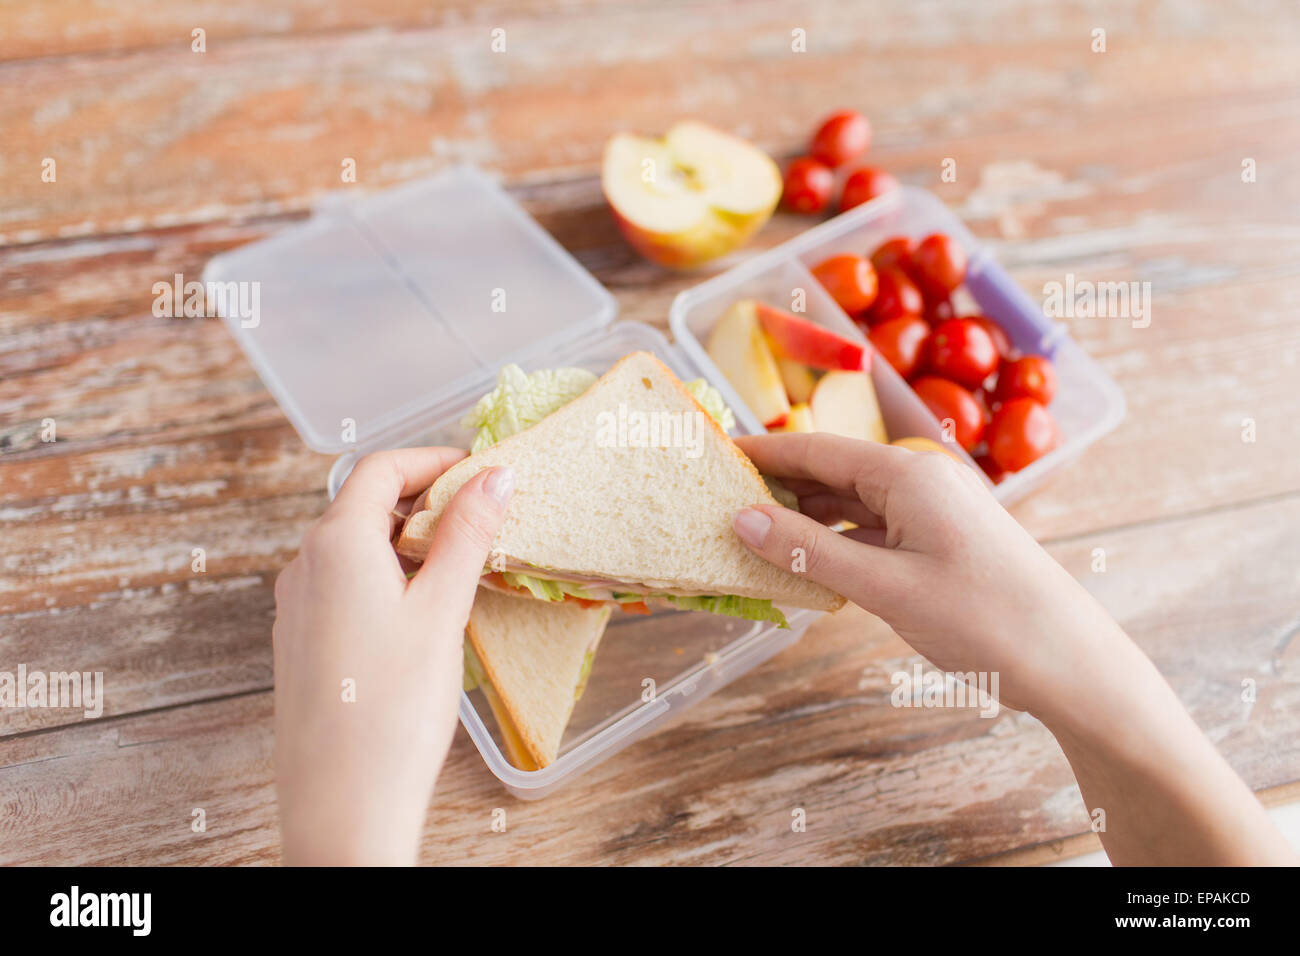 close up of woman with food in plastic container - Stock Image